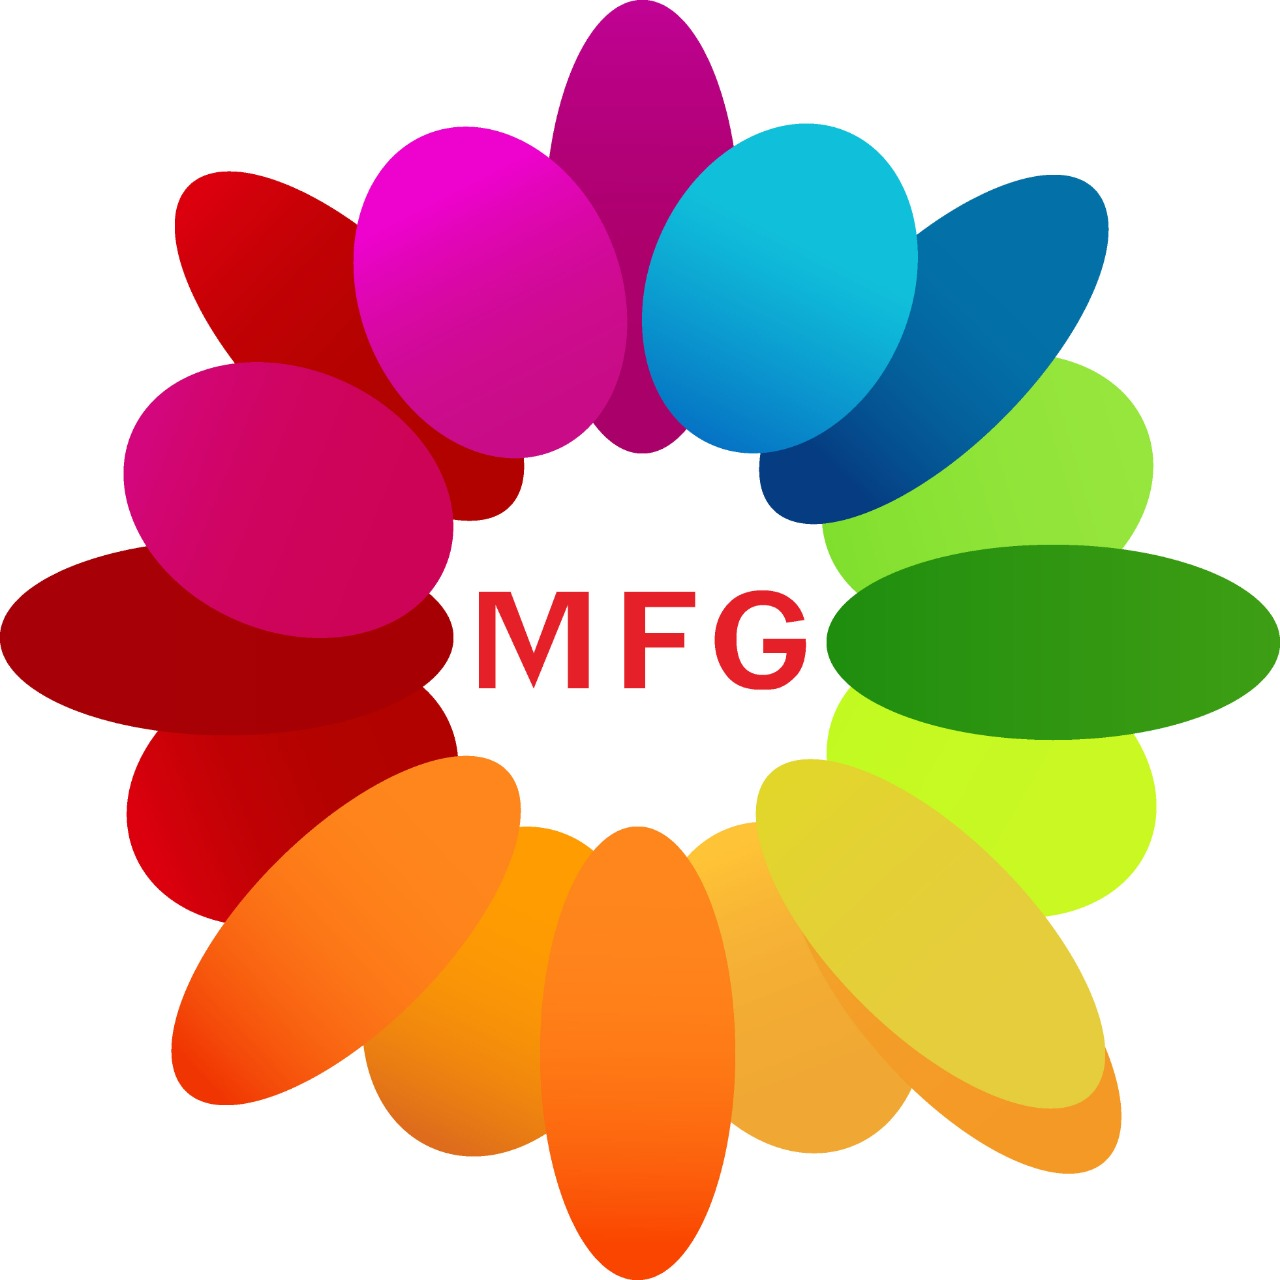 Doing Your Own Flowers For A Wedding: 12 Red Roses In Vase